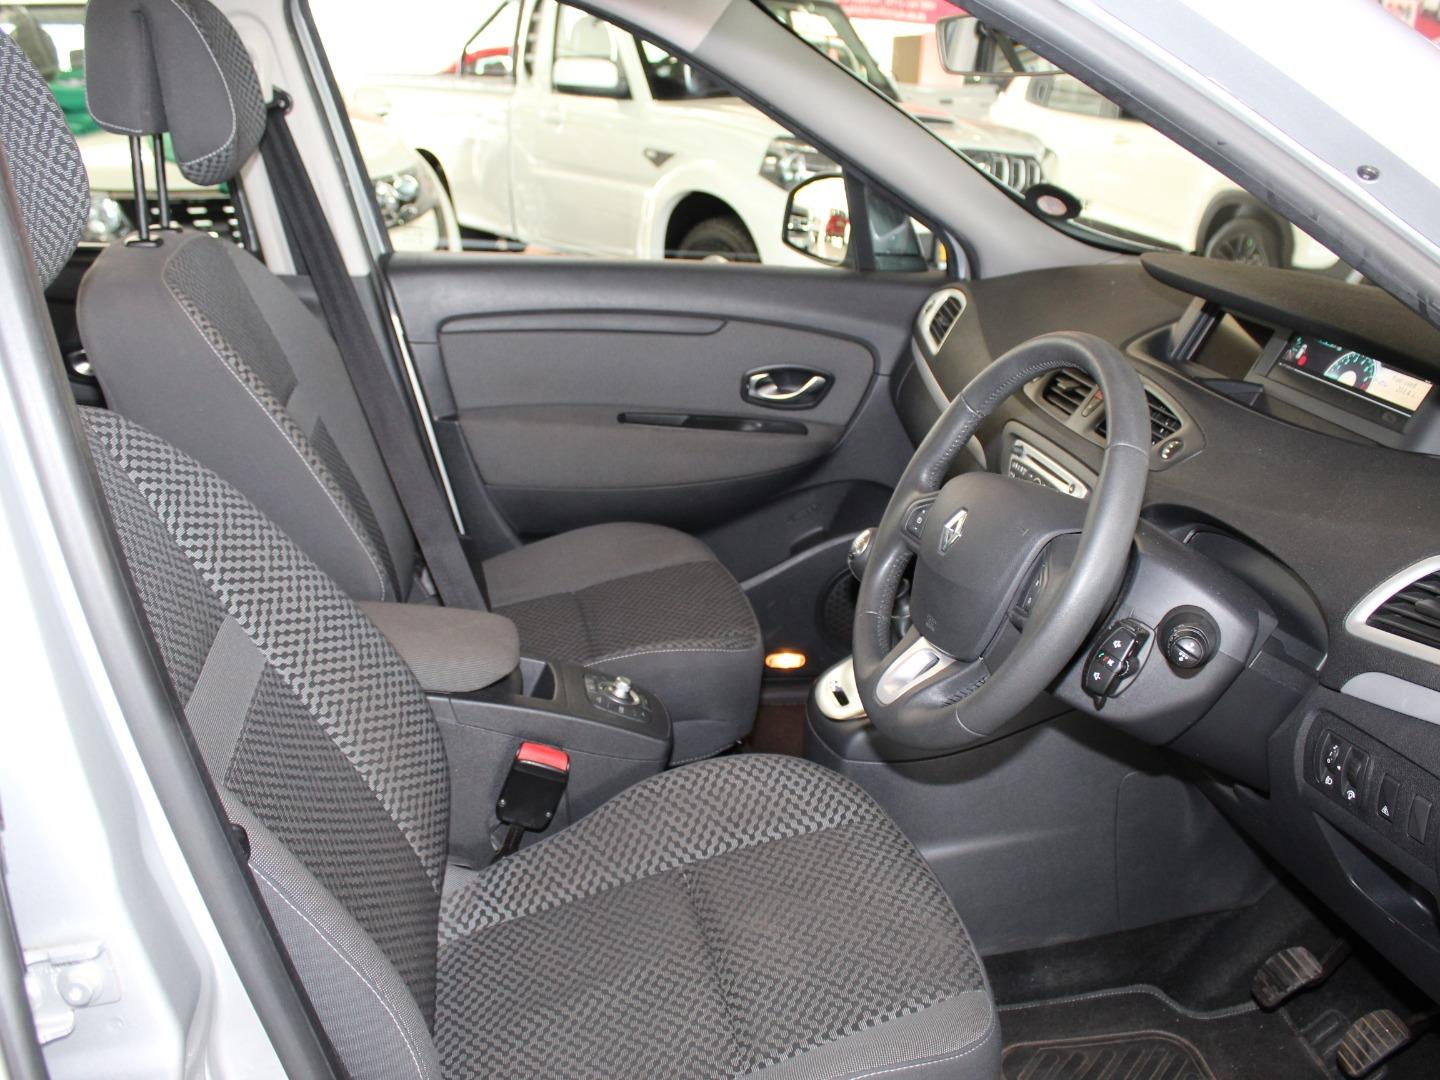 2012 Renault Scenic 1.6 Expression- Picture 7